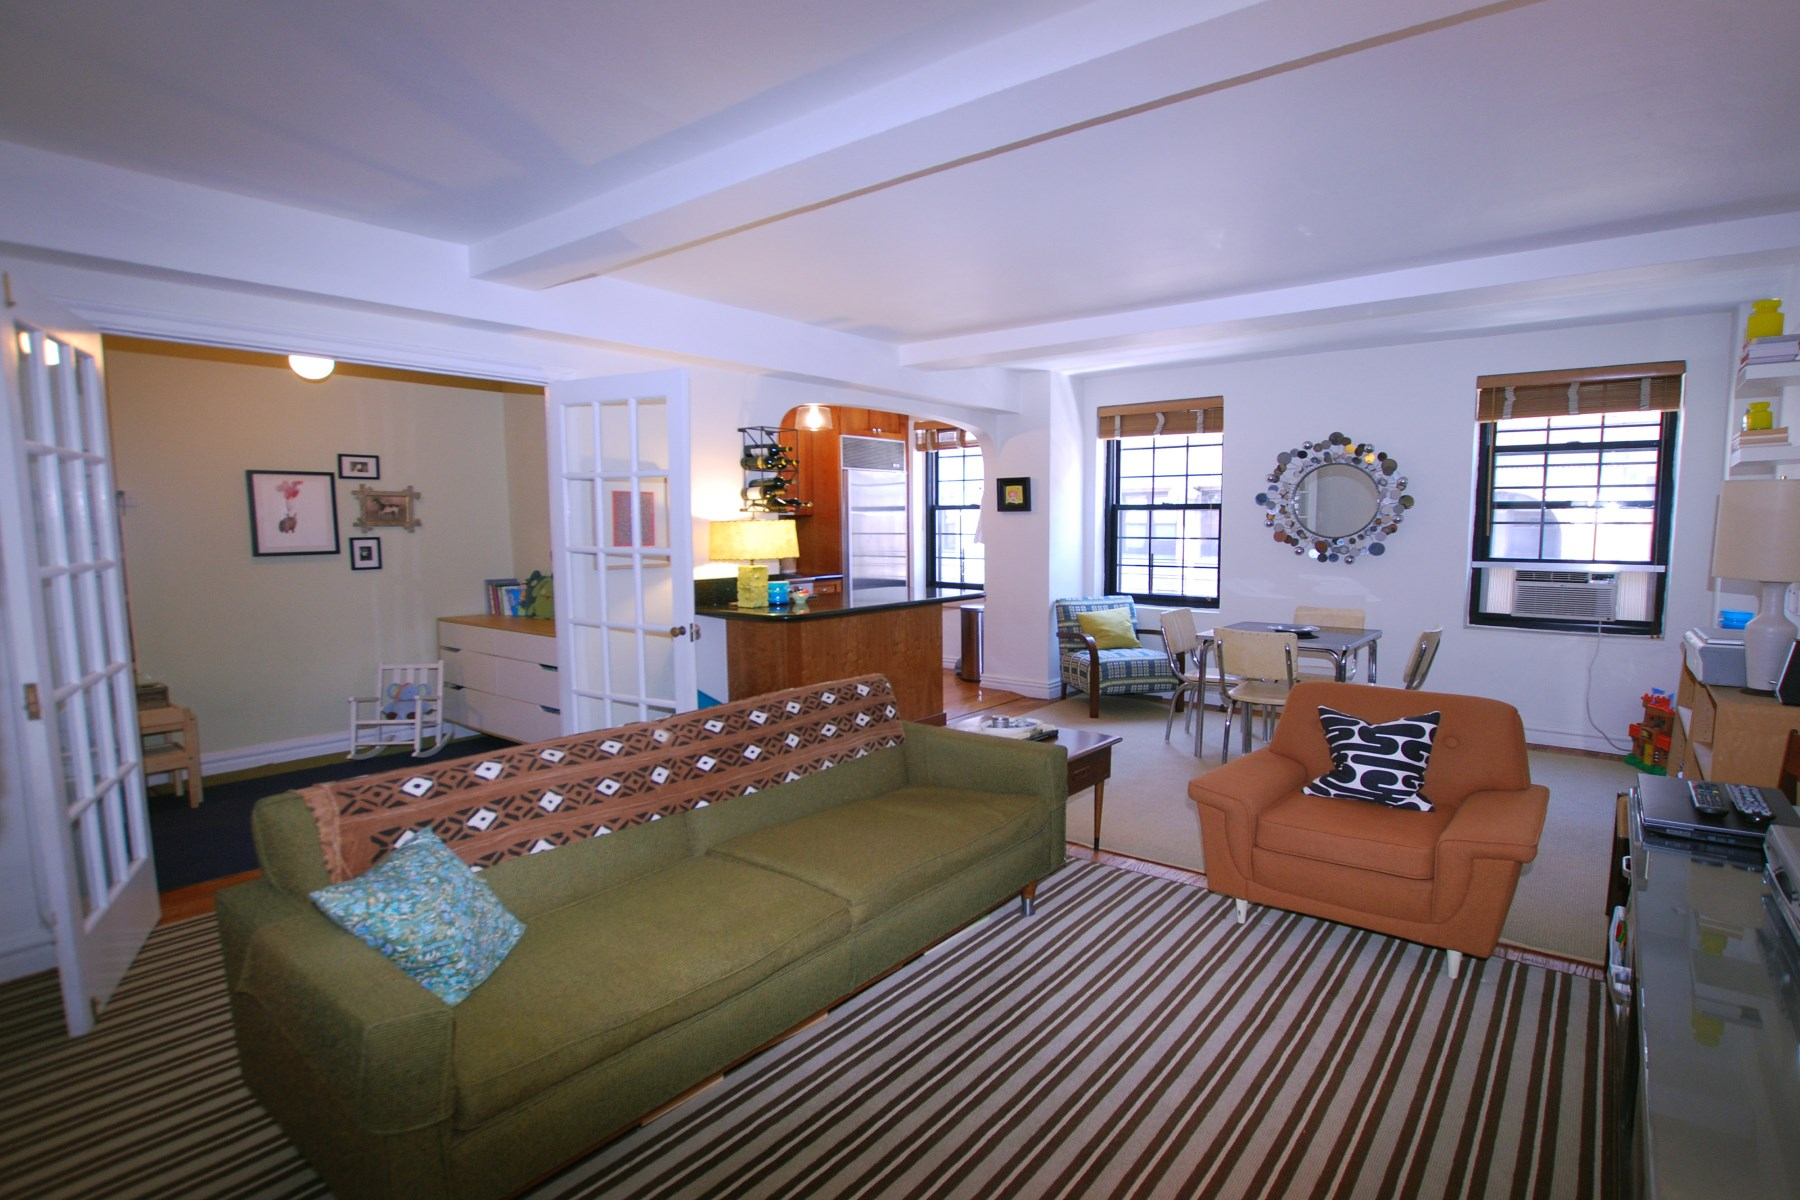 Co-op for Sale at 102 East 22nd Street, Apt. 9H 102 East 22nd Street APt 9H Gramercy Park, New York, New York, 10010 United States